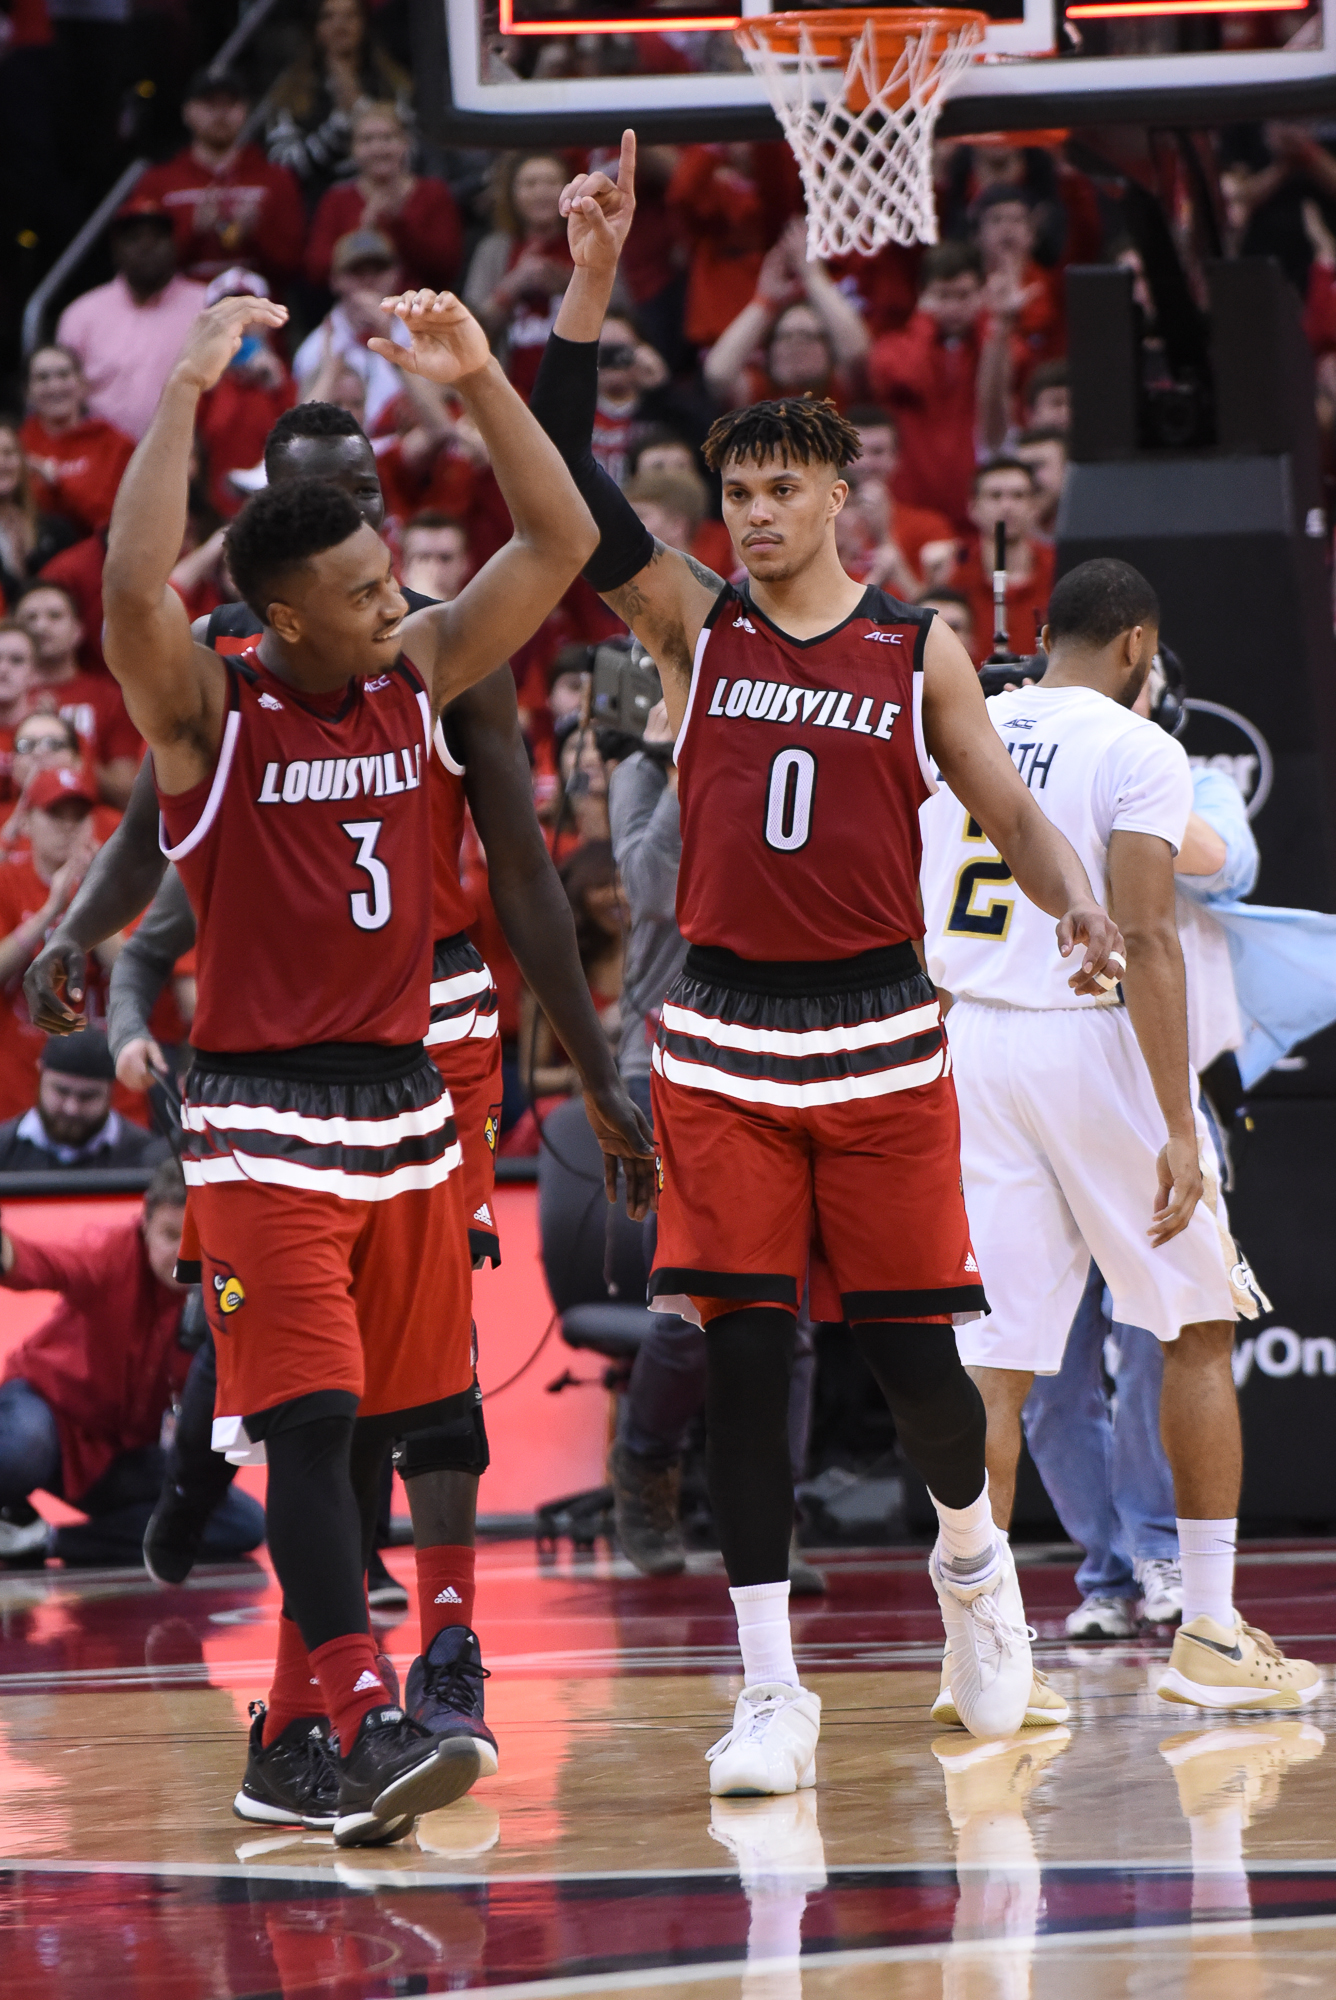 Lewis and Lee celebrate the win over Georgia Tech